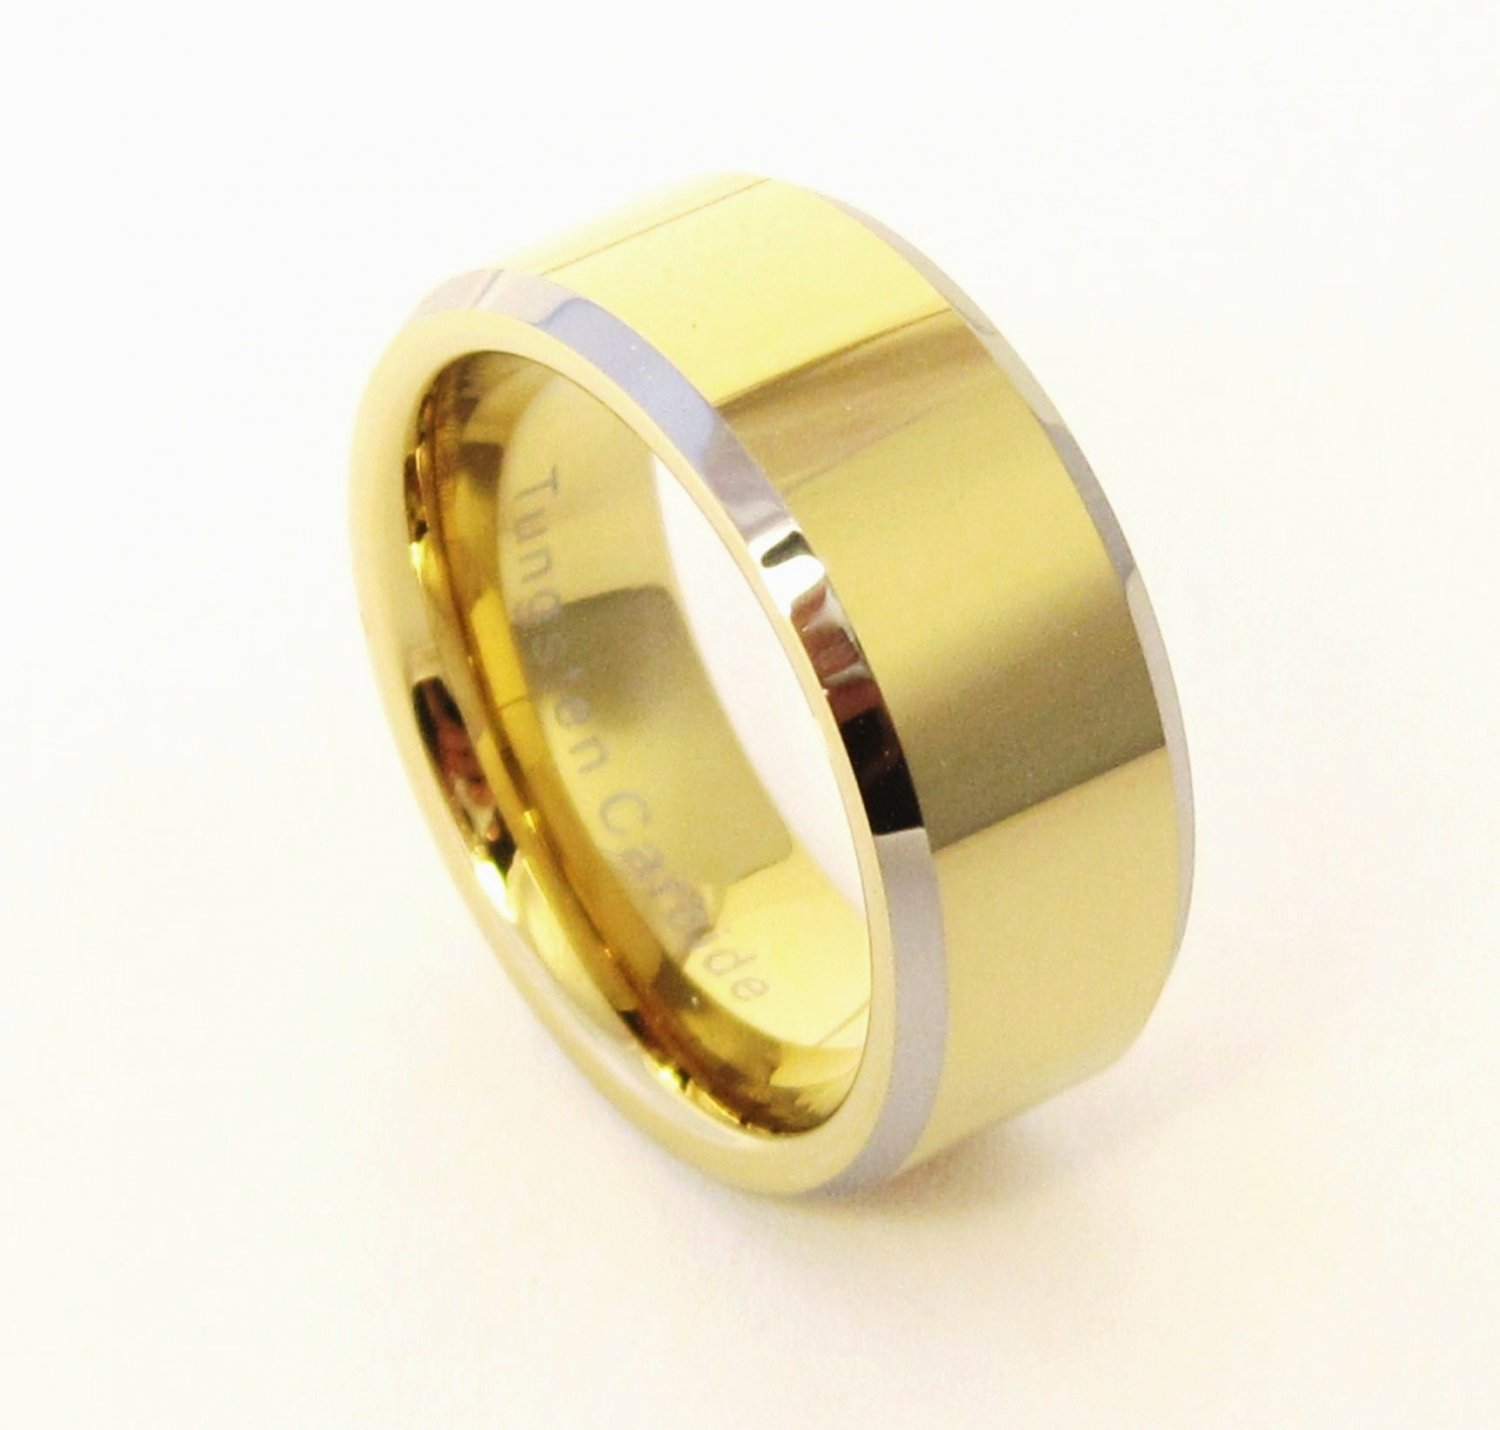 9mm Unisex Gold Tungsten Carbide Ring TU6002 Sz 5,6,7,13,14